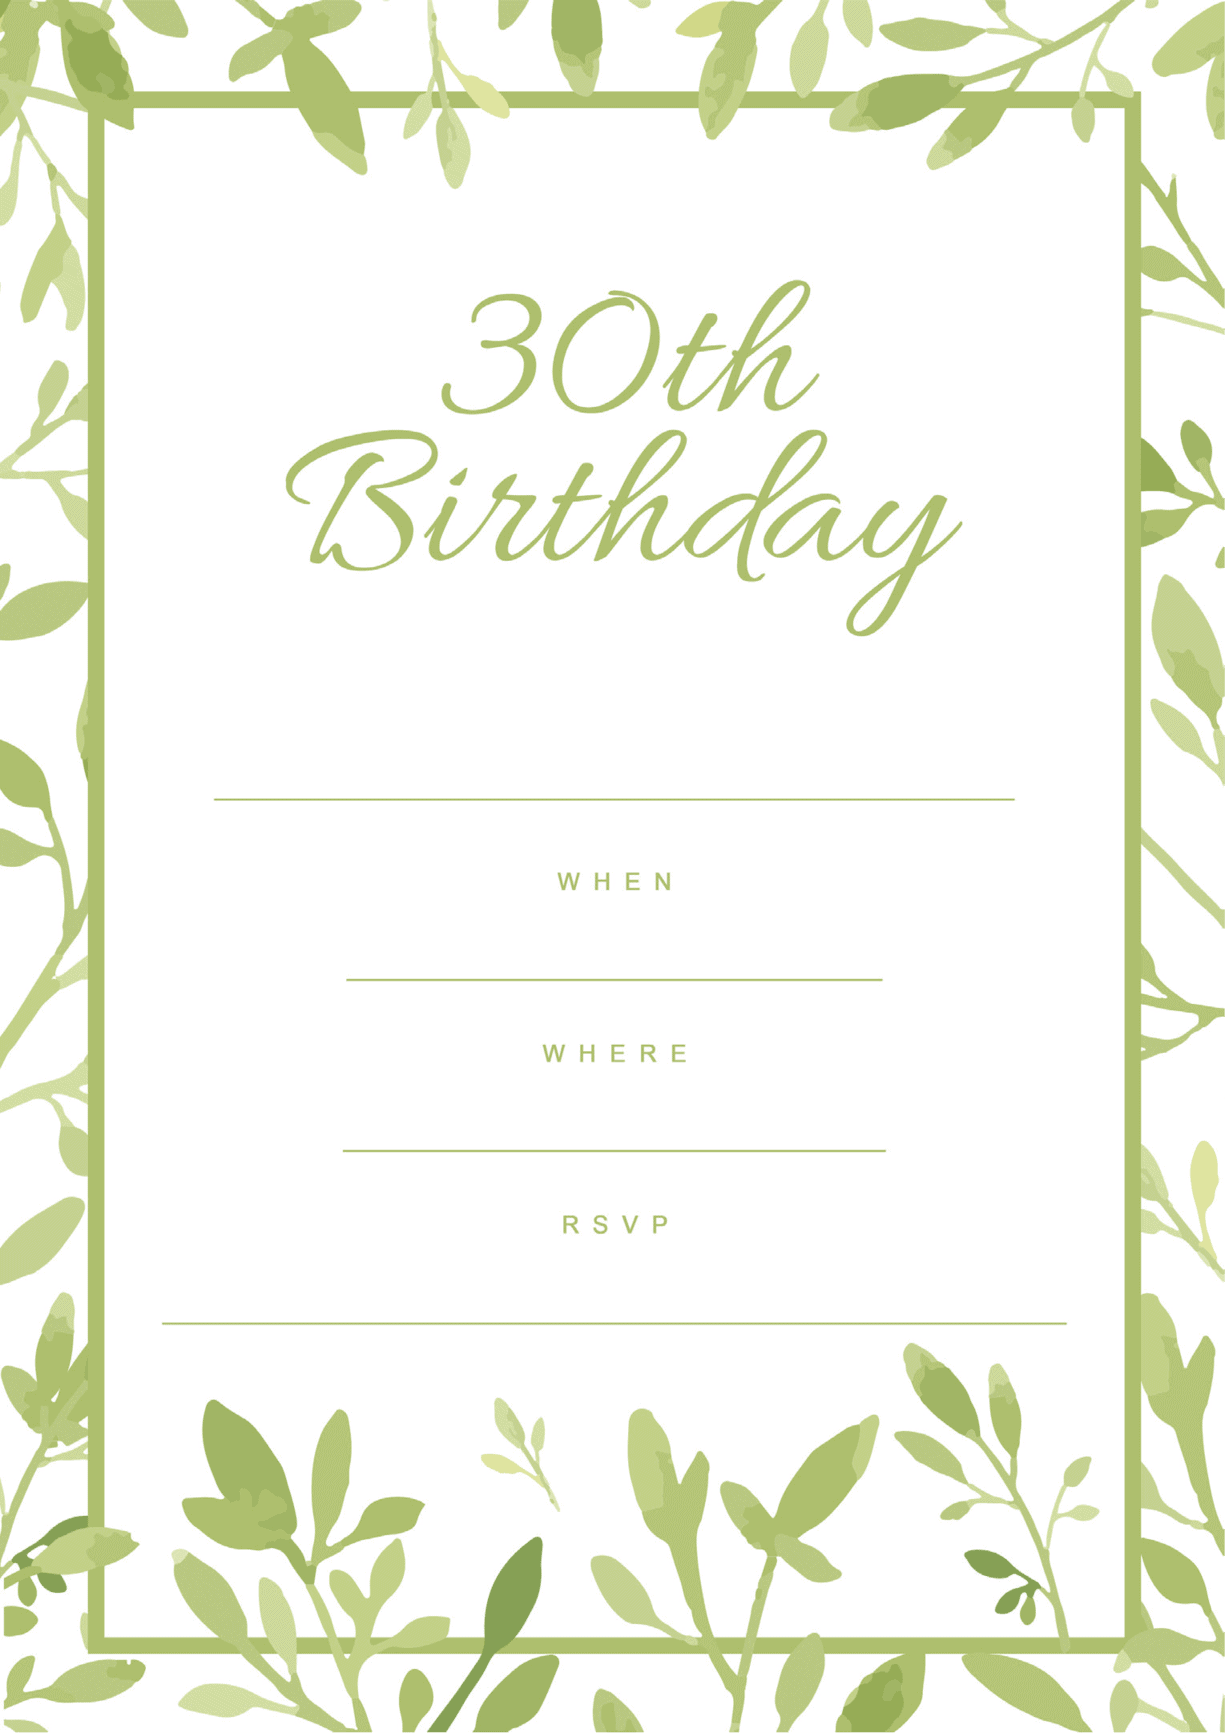 30th birthday green white design